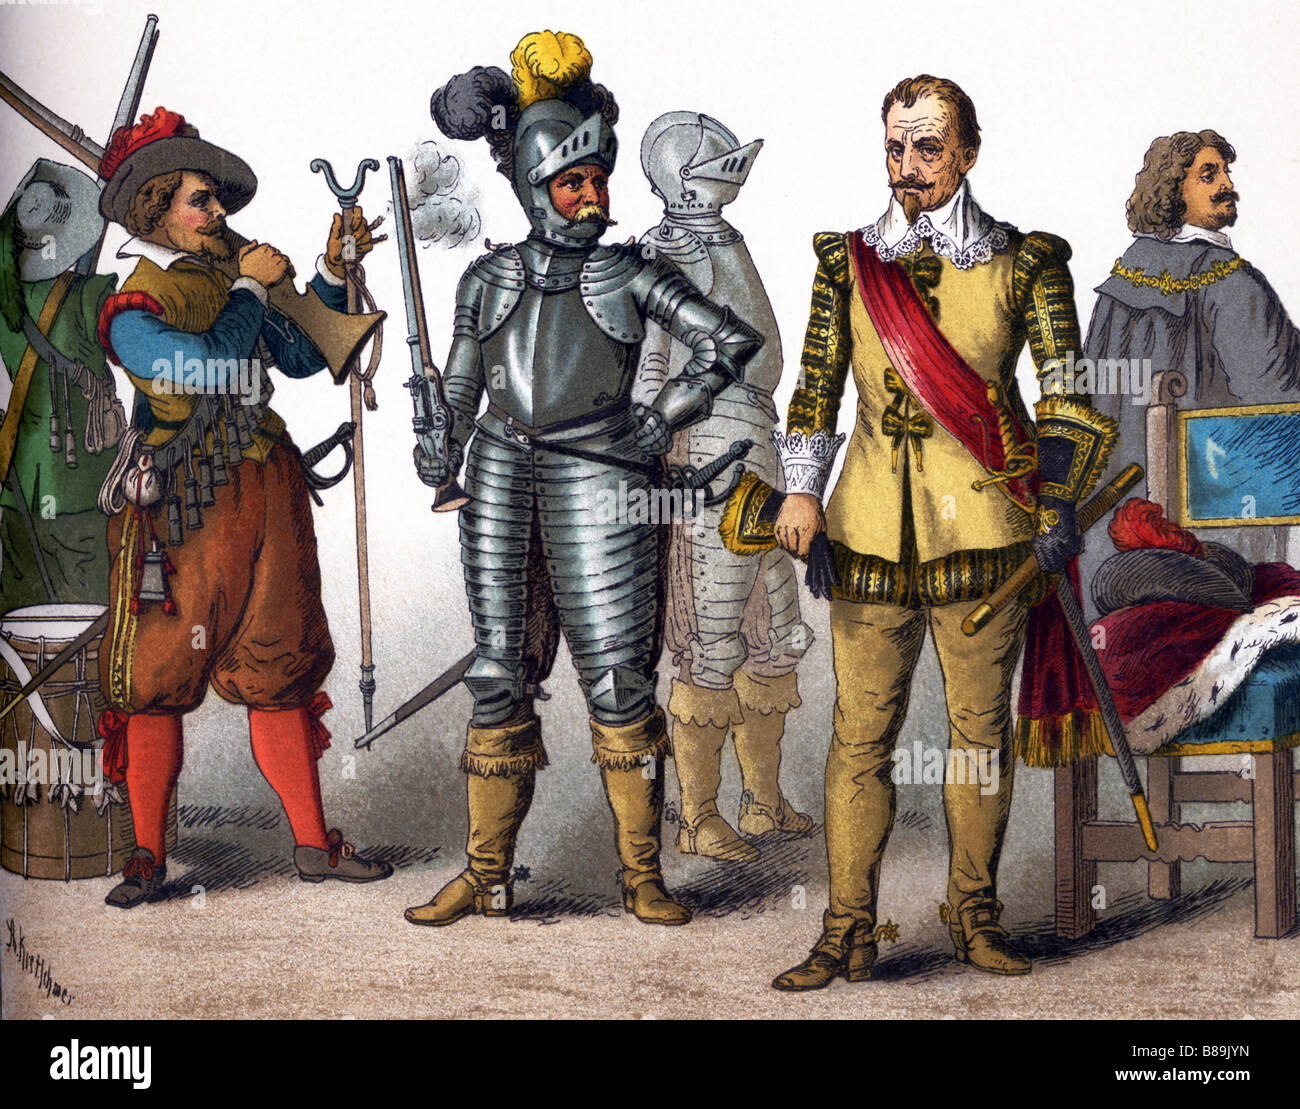 German Military And Nobles In 1600s Stock Photo, Royalty